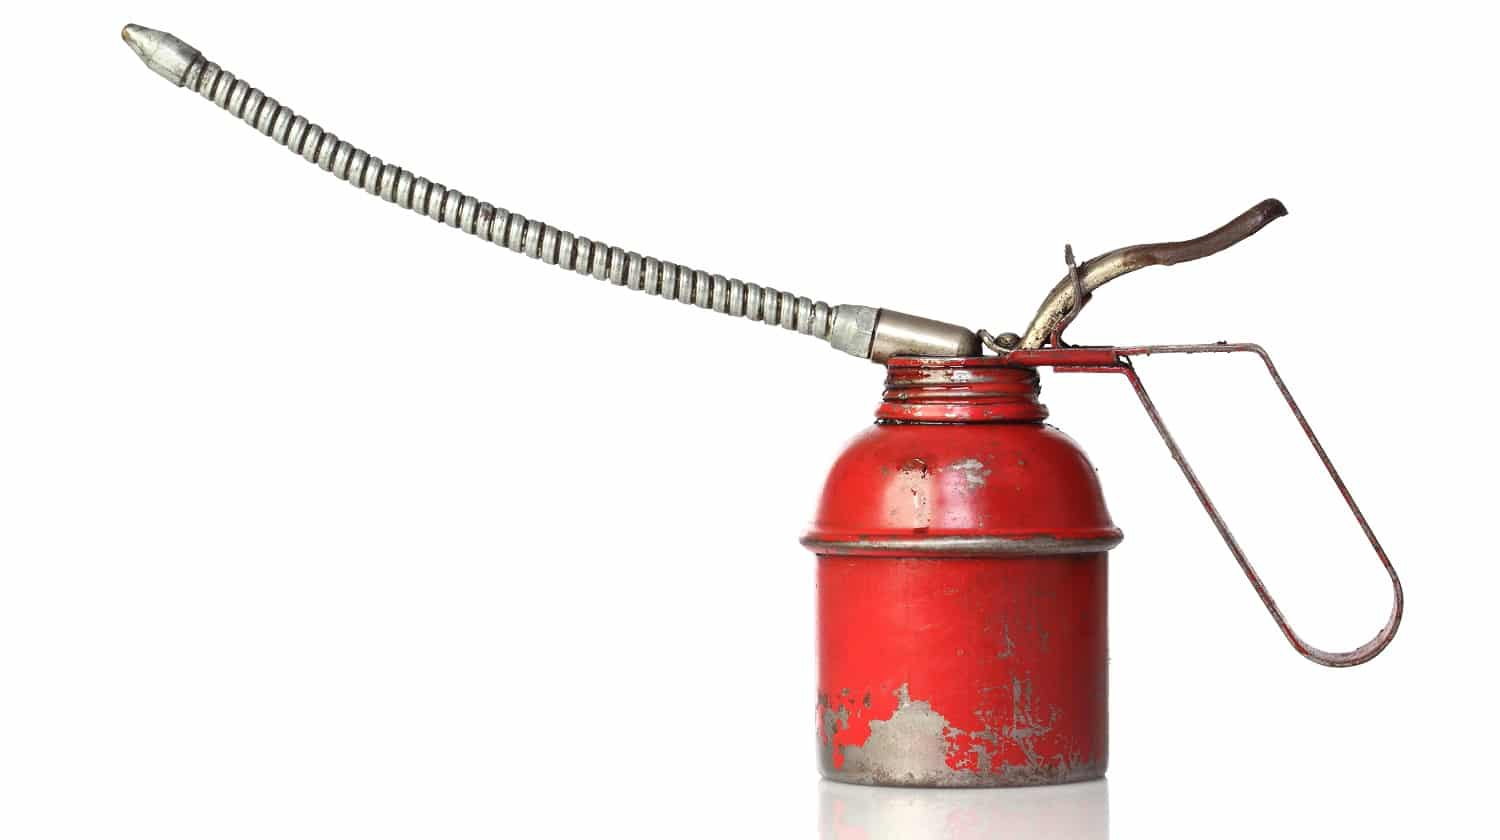 closeup image of classic red oiler on white background